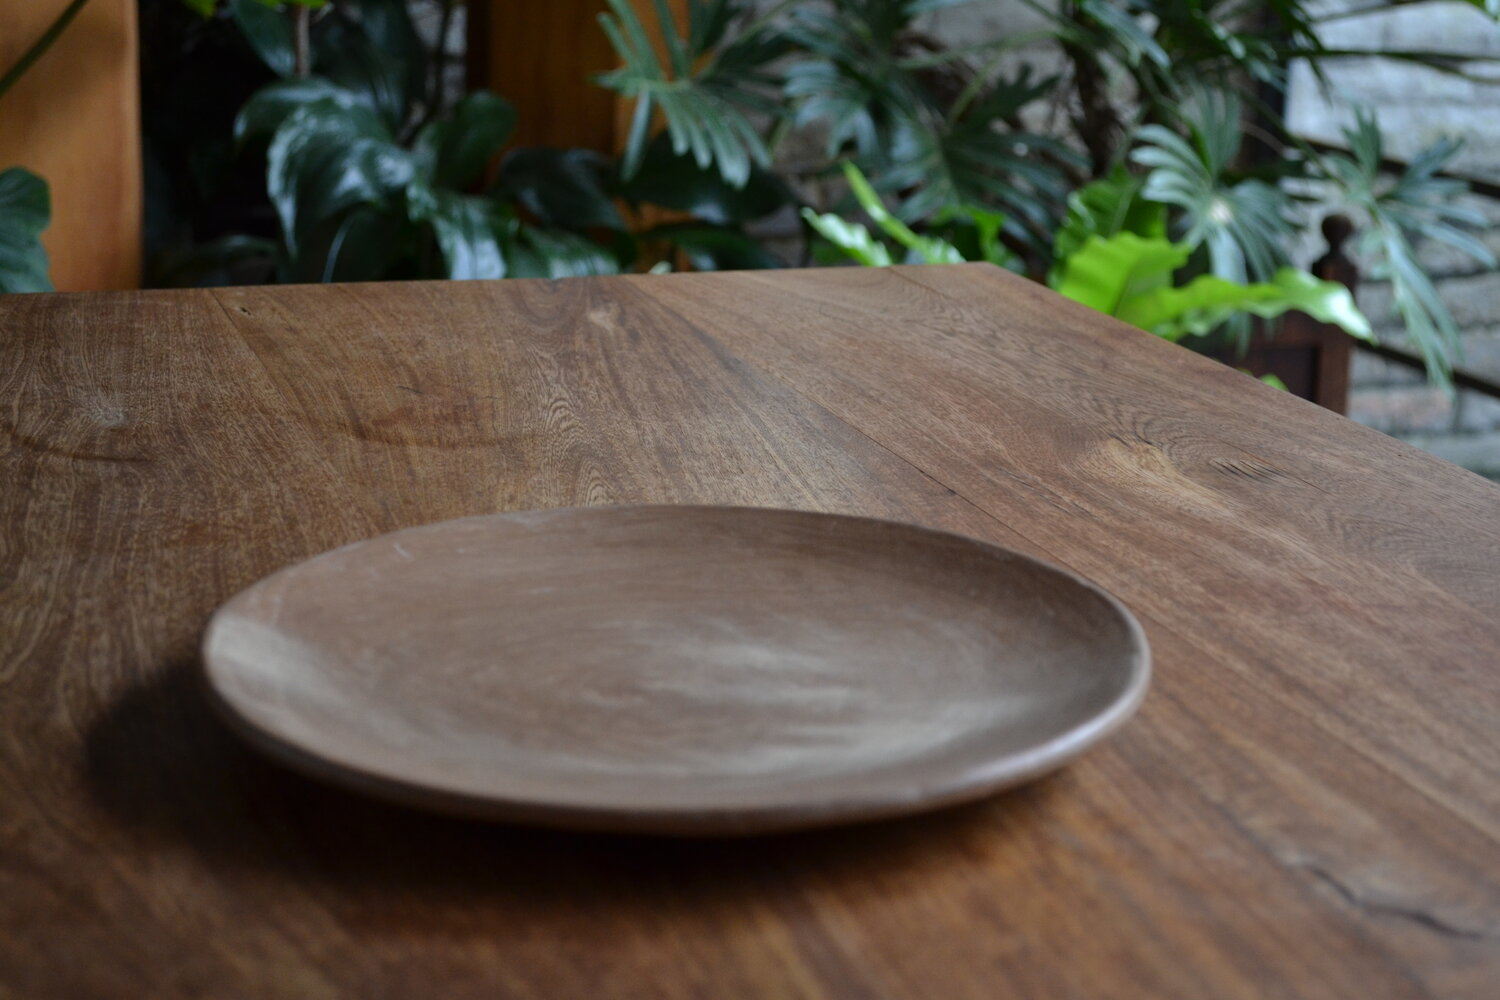 Set of 2 Beeswax Dinner Plates by La Muerte Tiene Permiso on curated-crowd.com